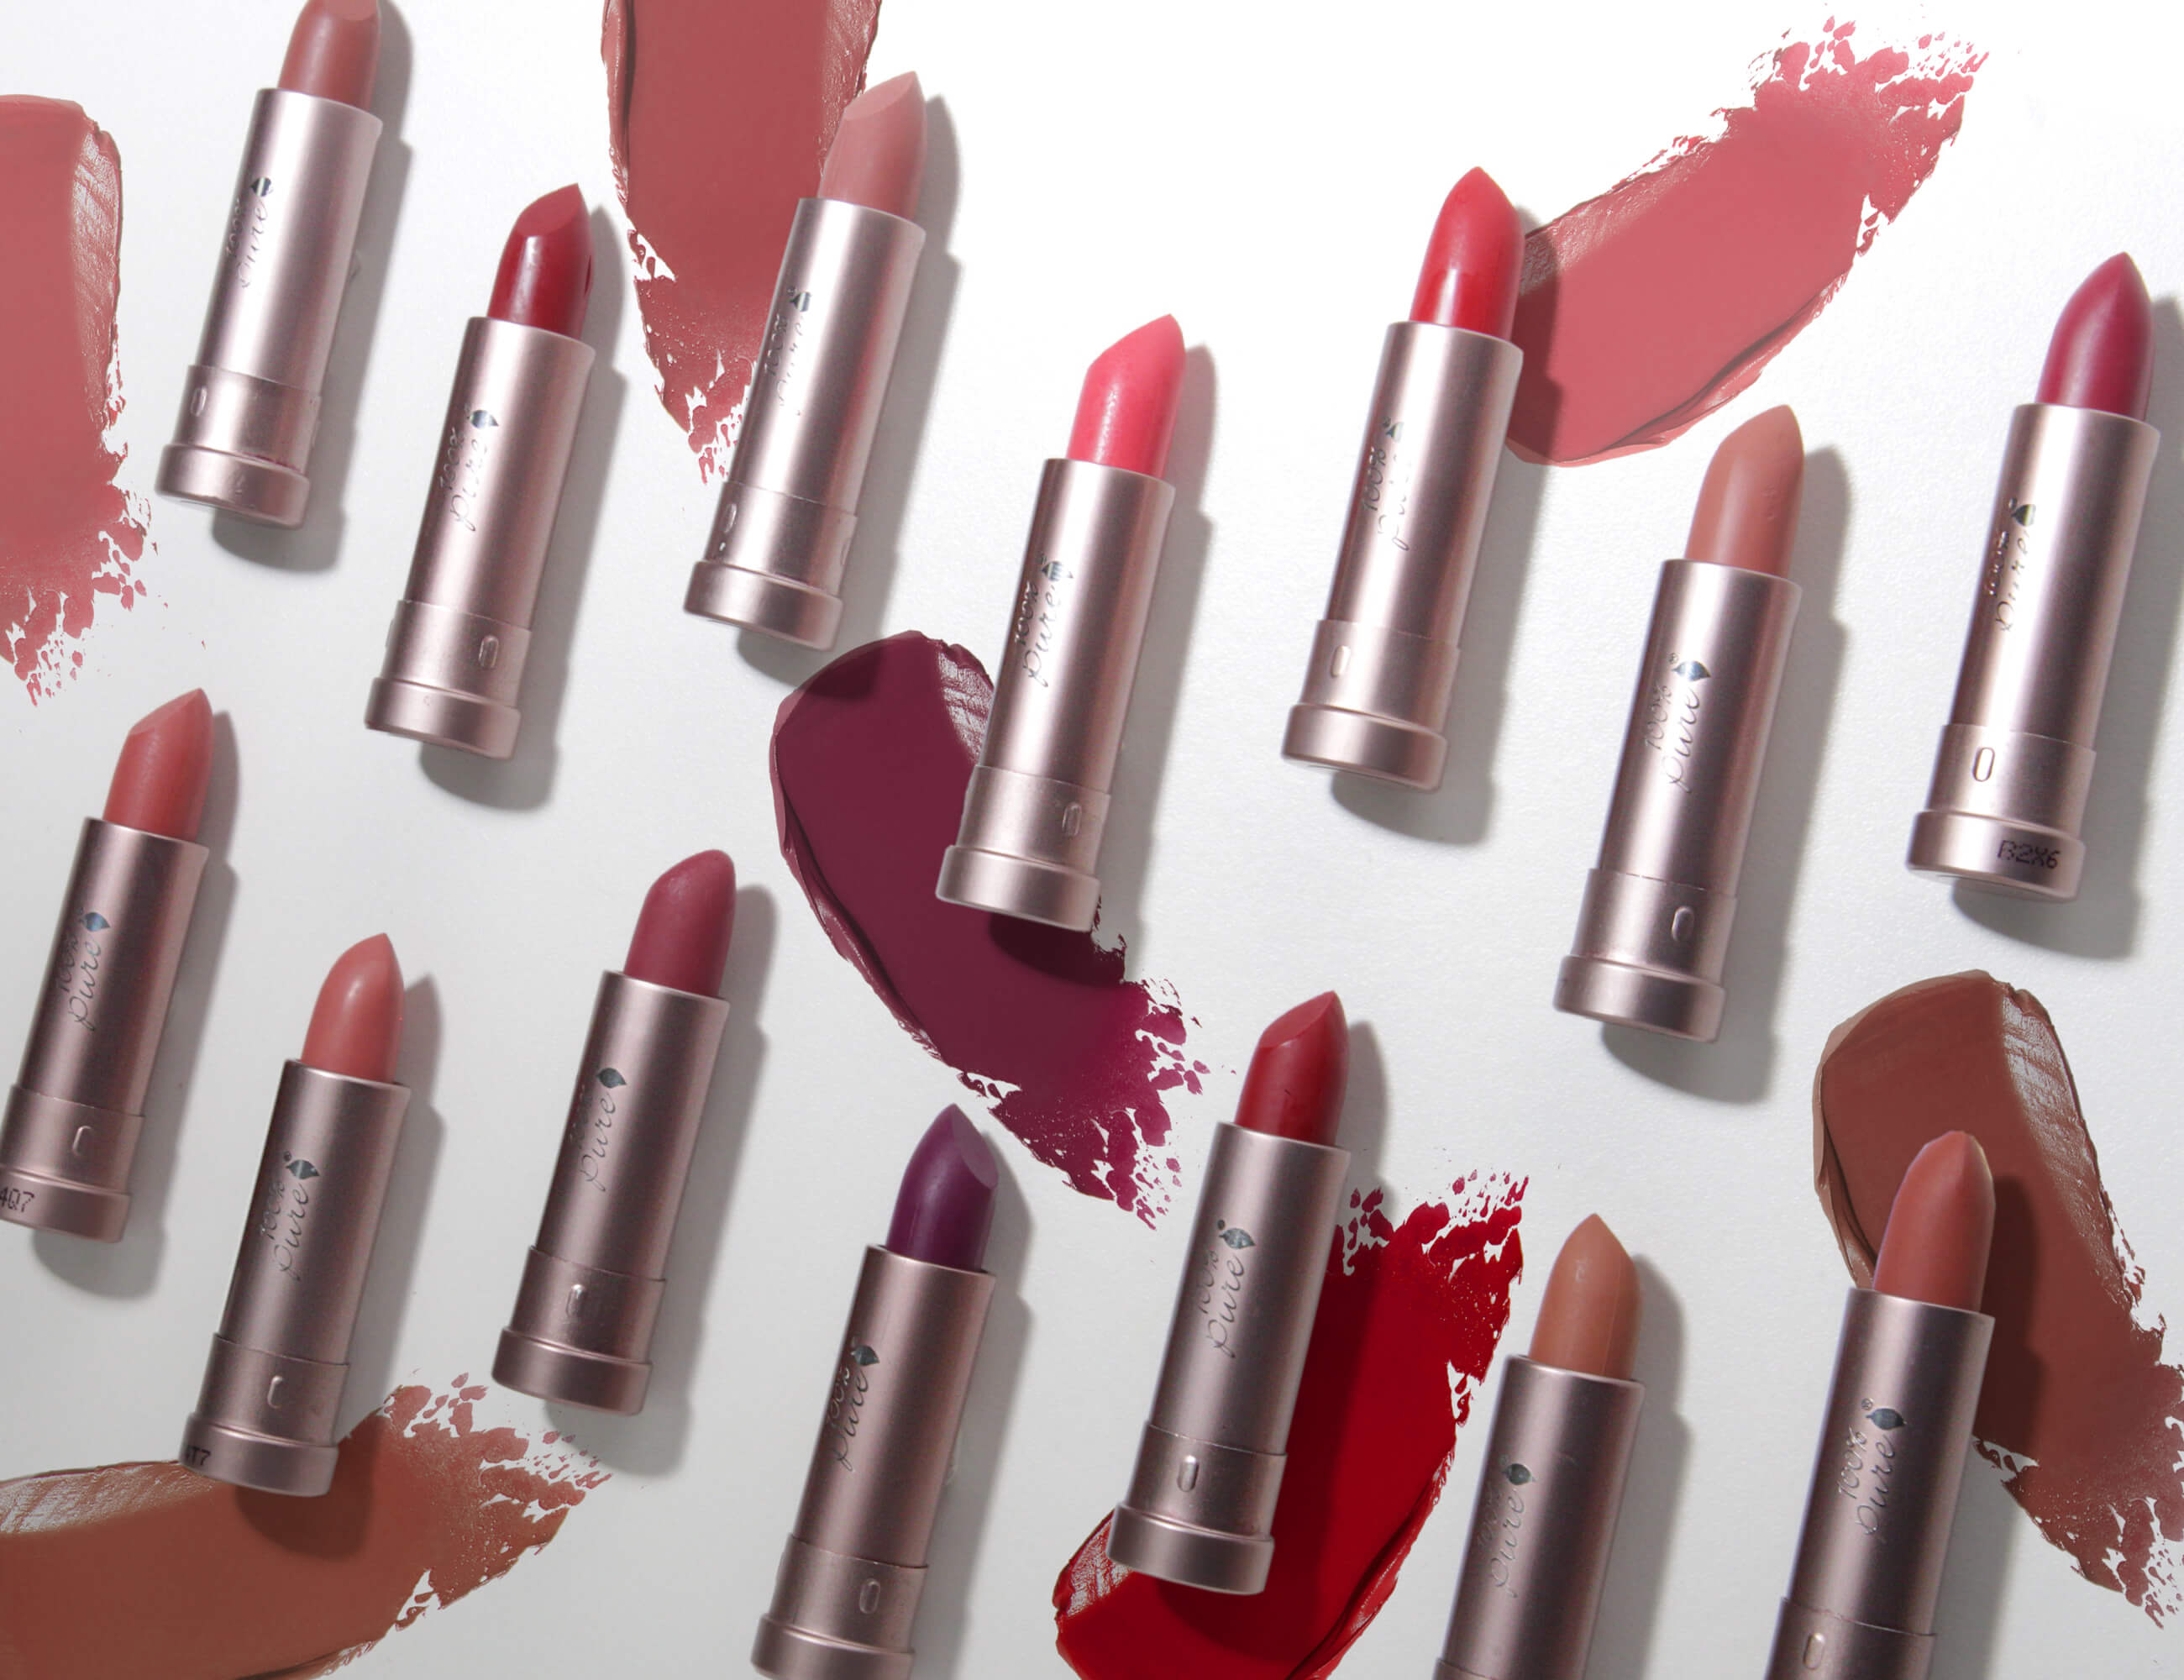 100% Pure Lipsticks